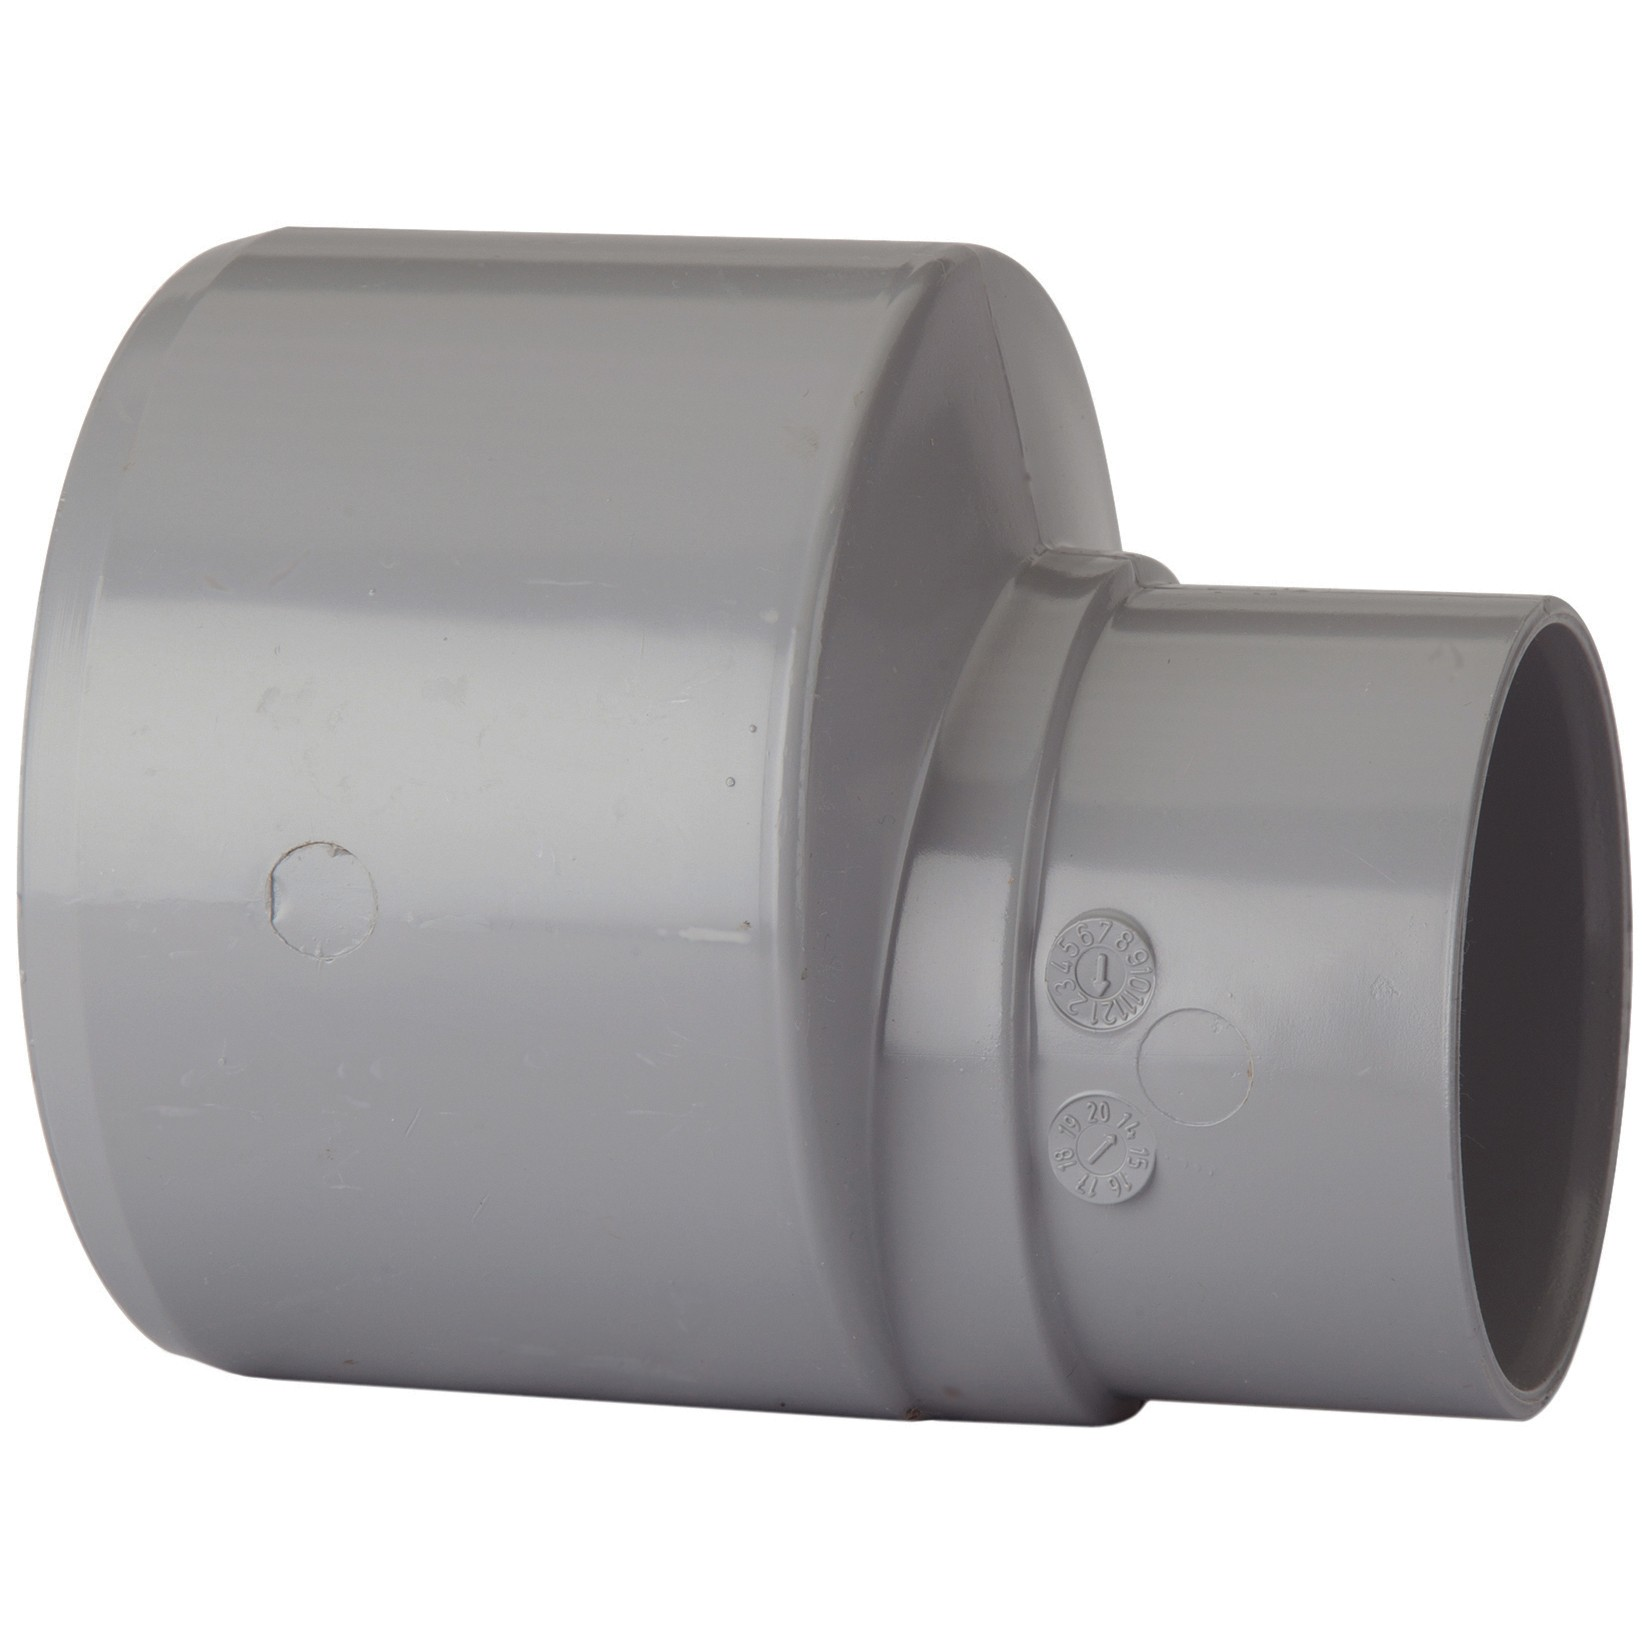 Polypipe 110mm To 68mm Rainwater Reducer - Grey